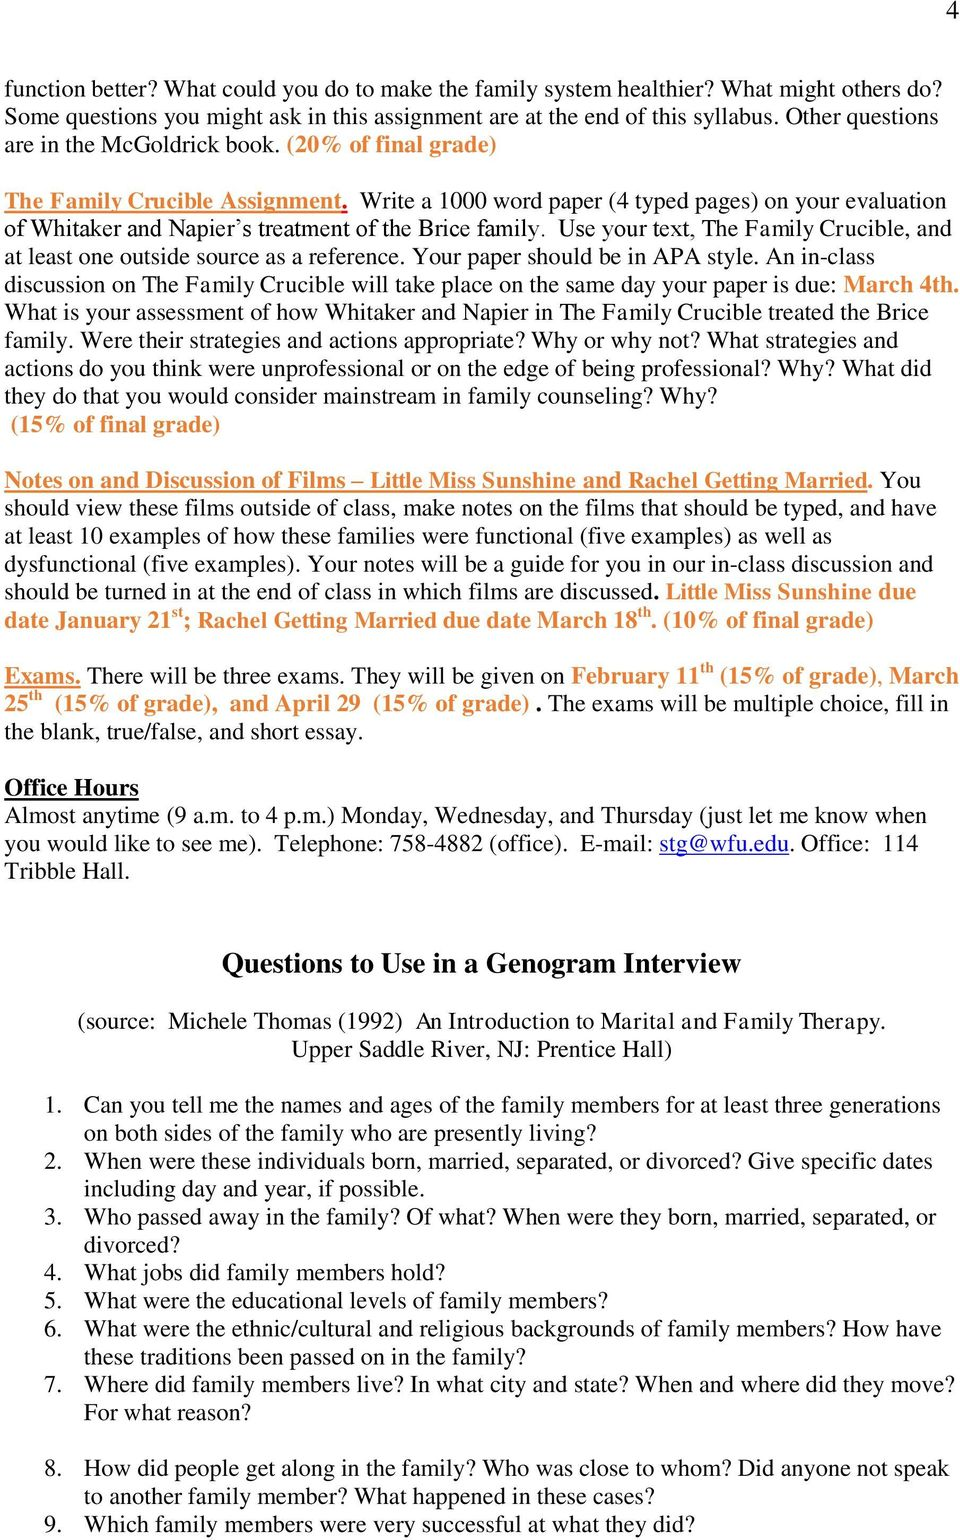 Write a 1000 word paper (4 typed pages) on your evaluation of Whitaker and Napier s treatment of the Brice family. Use your text, The Family Crucible, and at least one outside source as a reference.